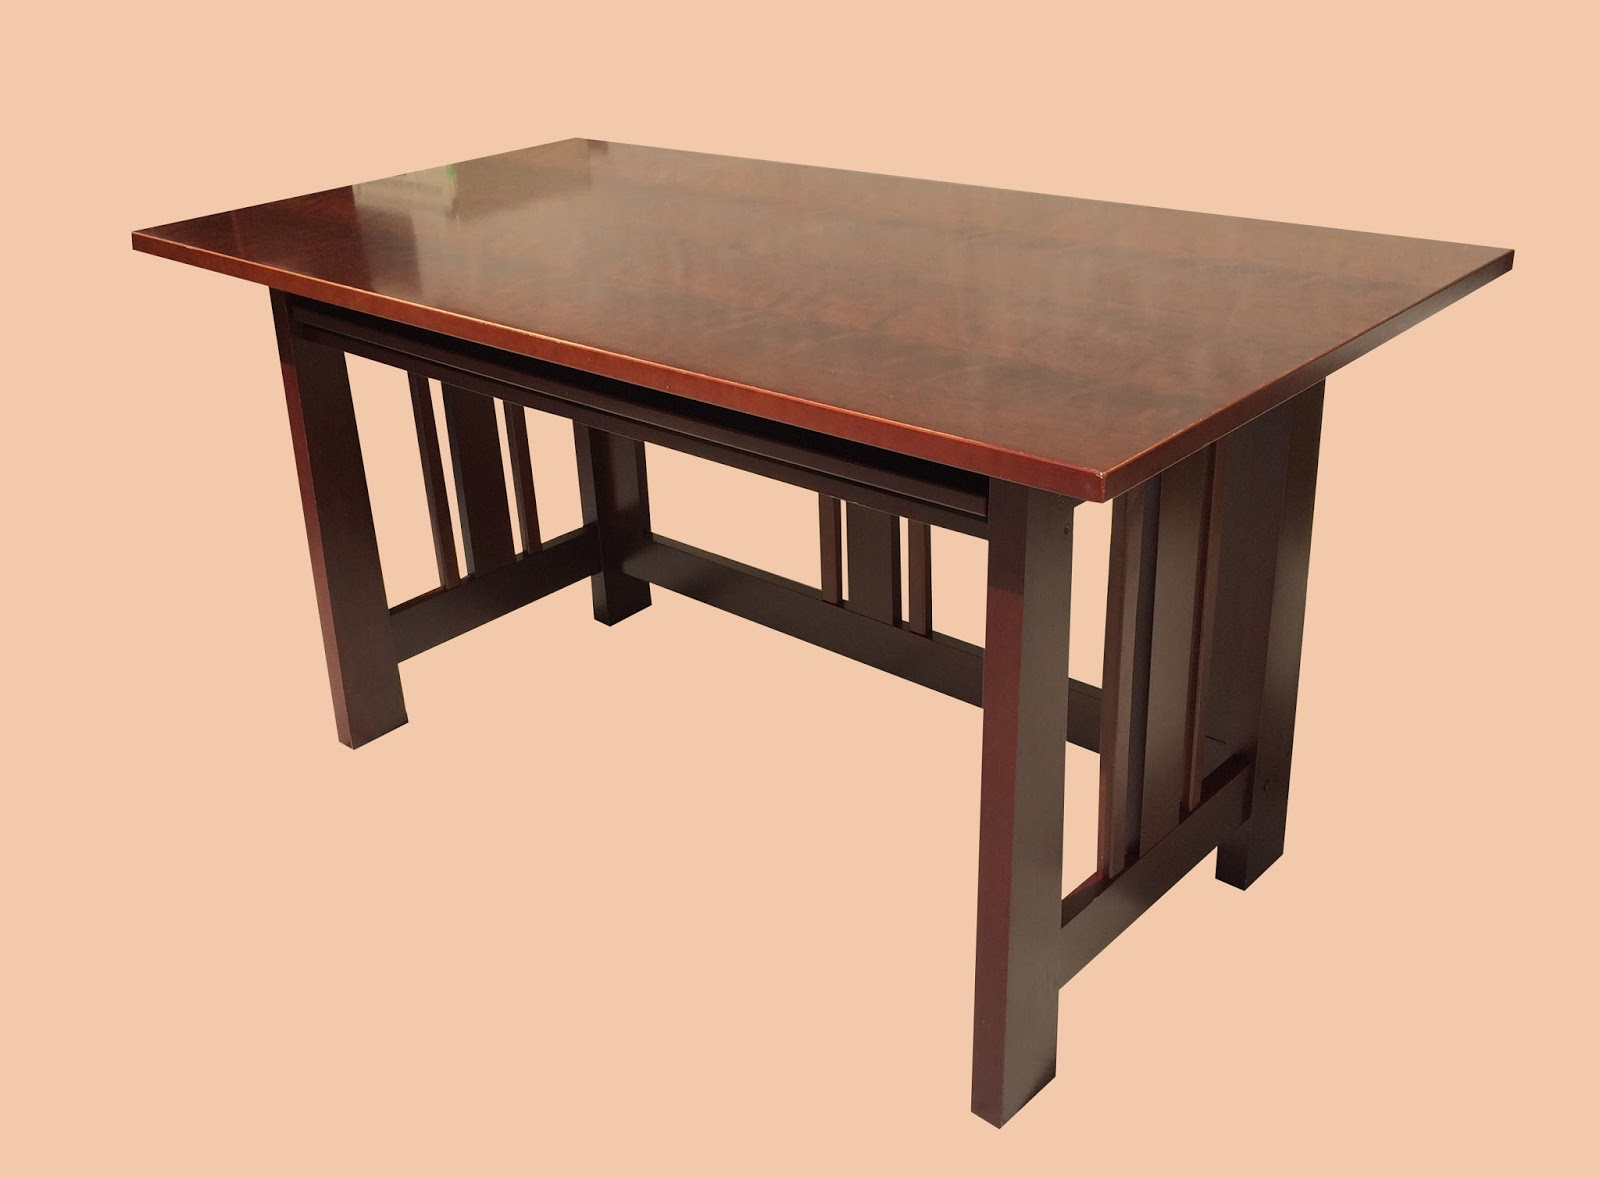 Uhuru furniture collectibles mission style desk with hutch 125 sold - Mission style computer desk with hutch ...